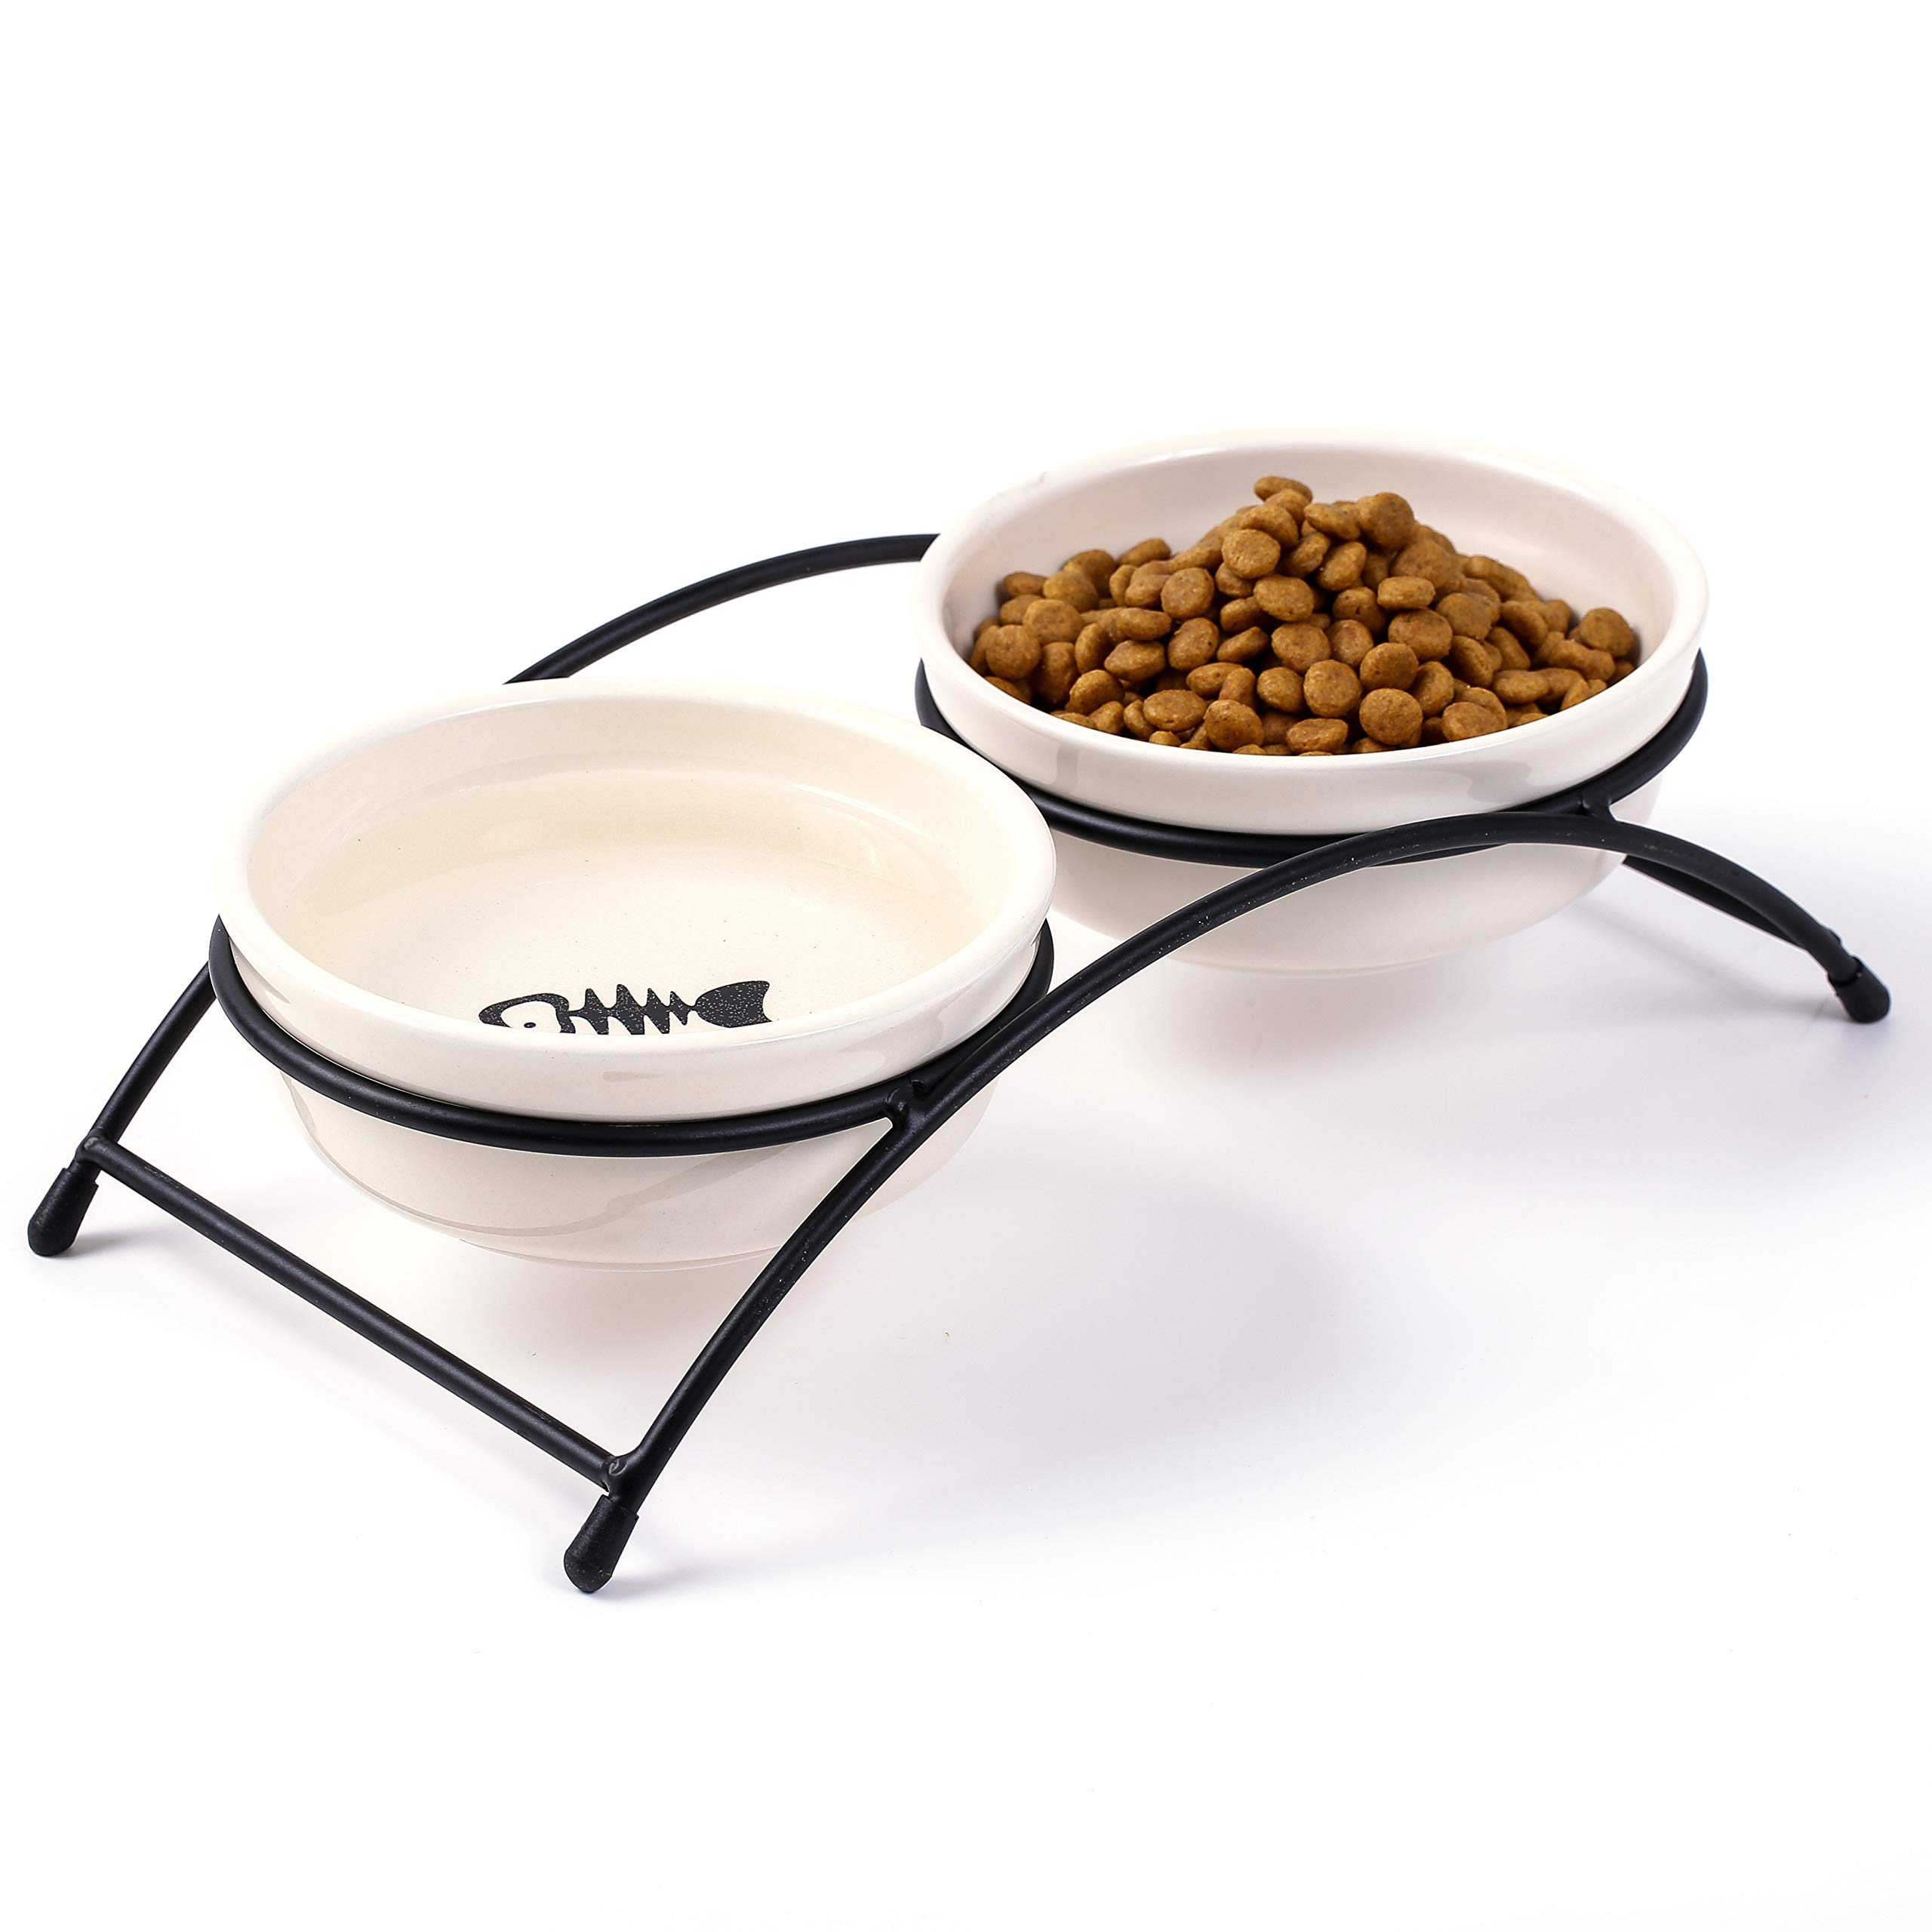 Ceramic Cat Bowls Food Feeding Stand Elevated Dog Bowl Outdoor Non-Skid by JanYoo